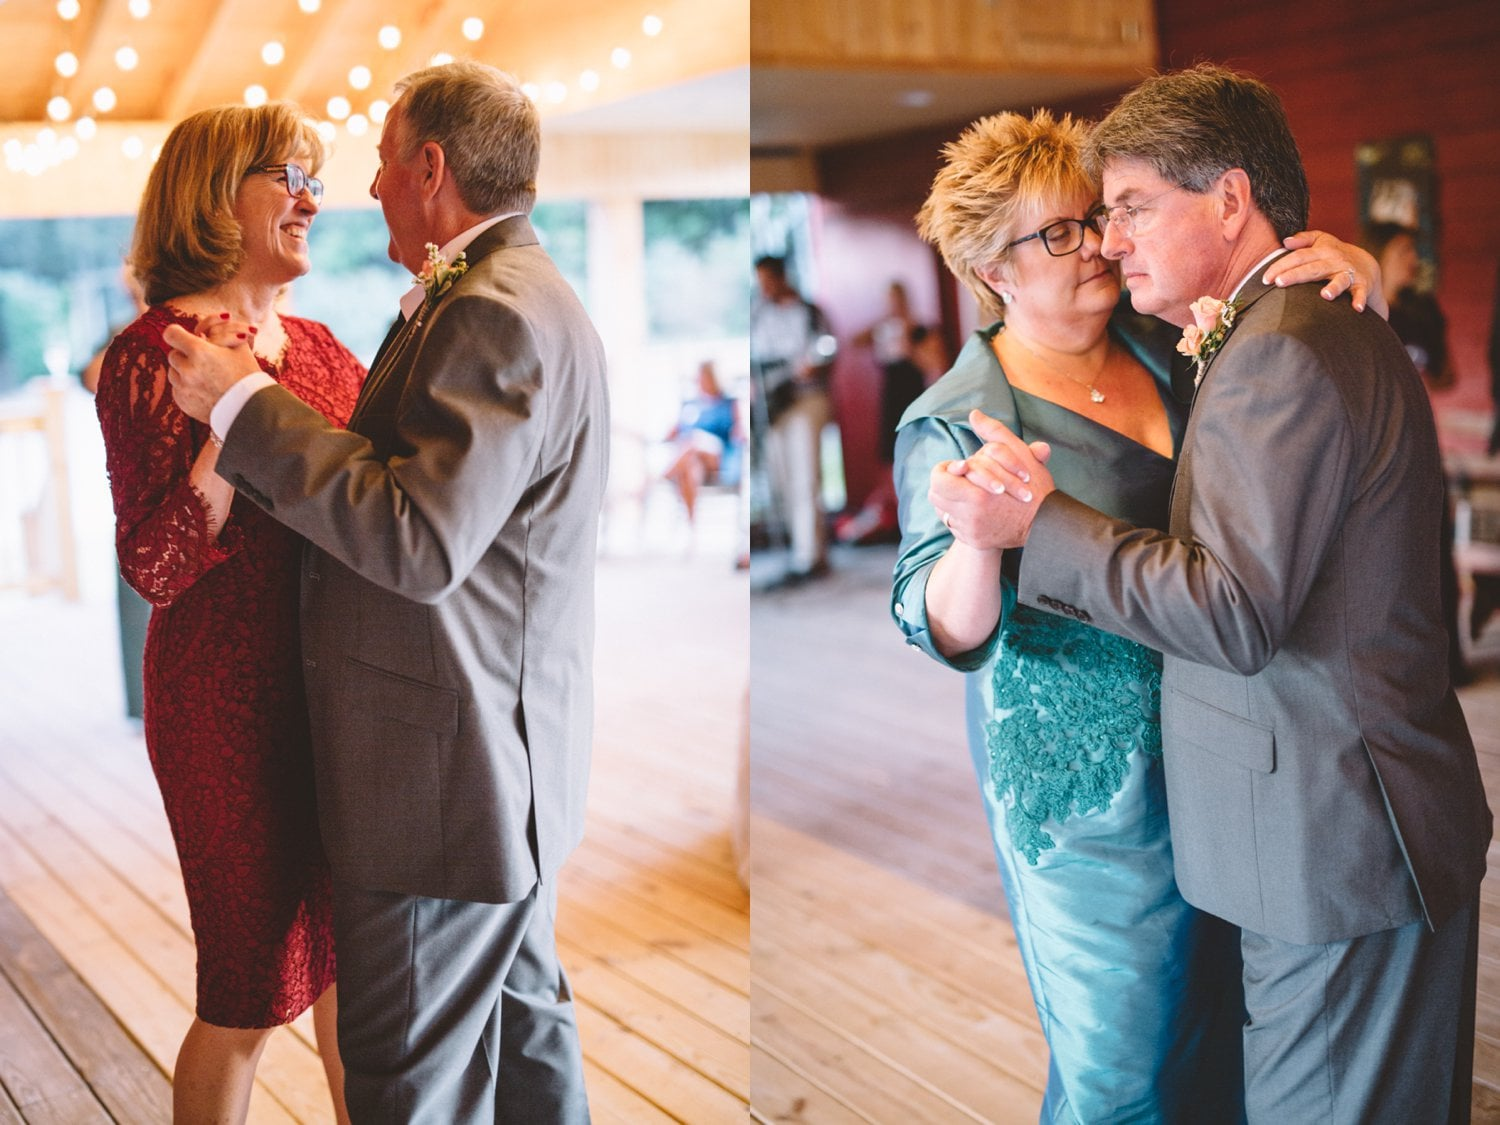 Sampsons_Hollow_Wedding_Walden_TN_-7.jpg